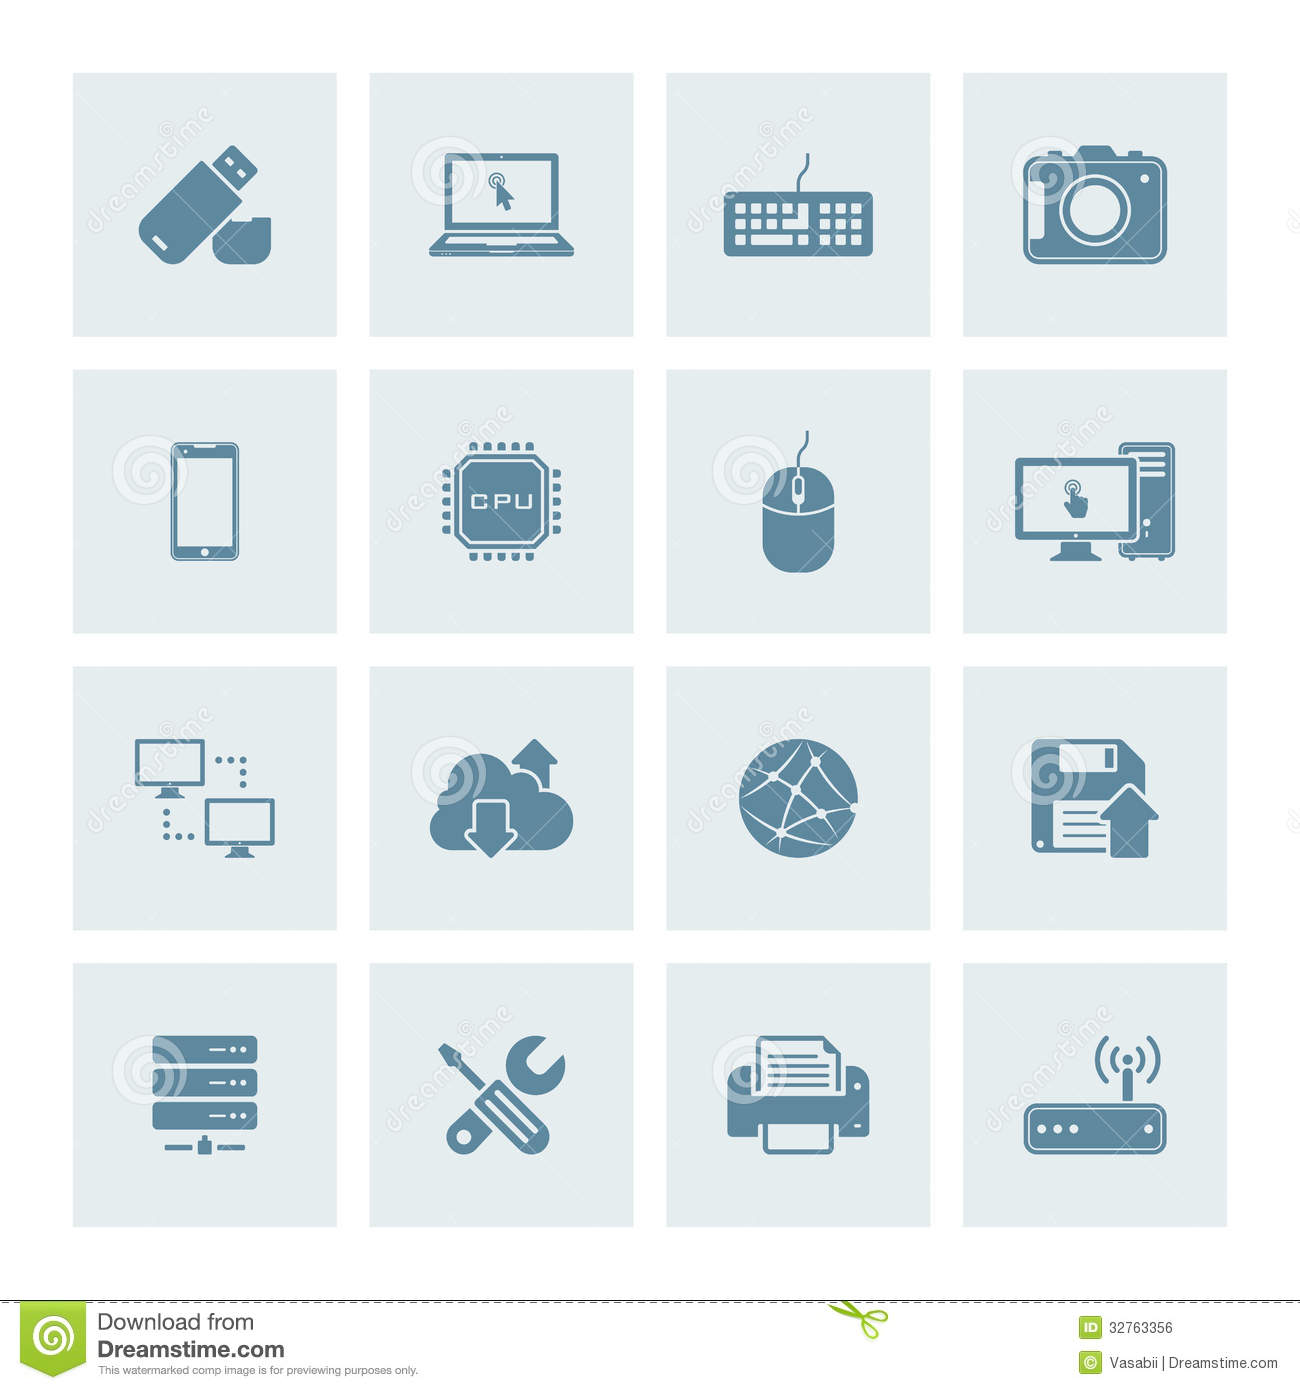 Information technology icons free vector download (28,765 free.